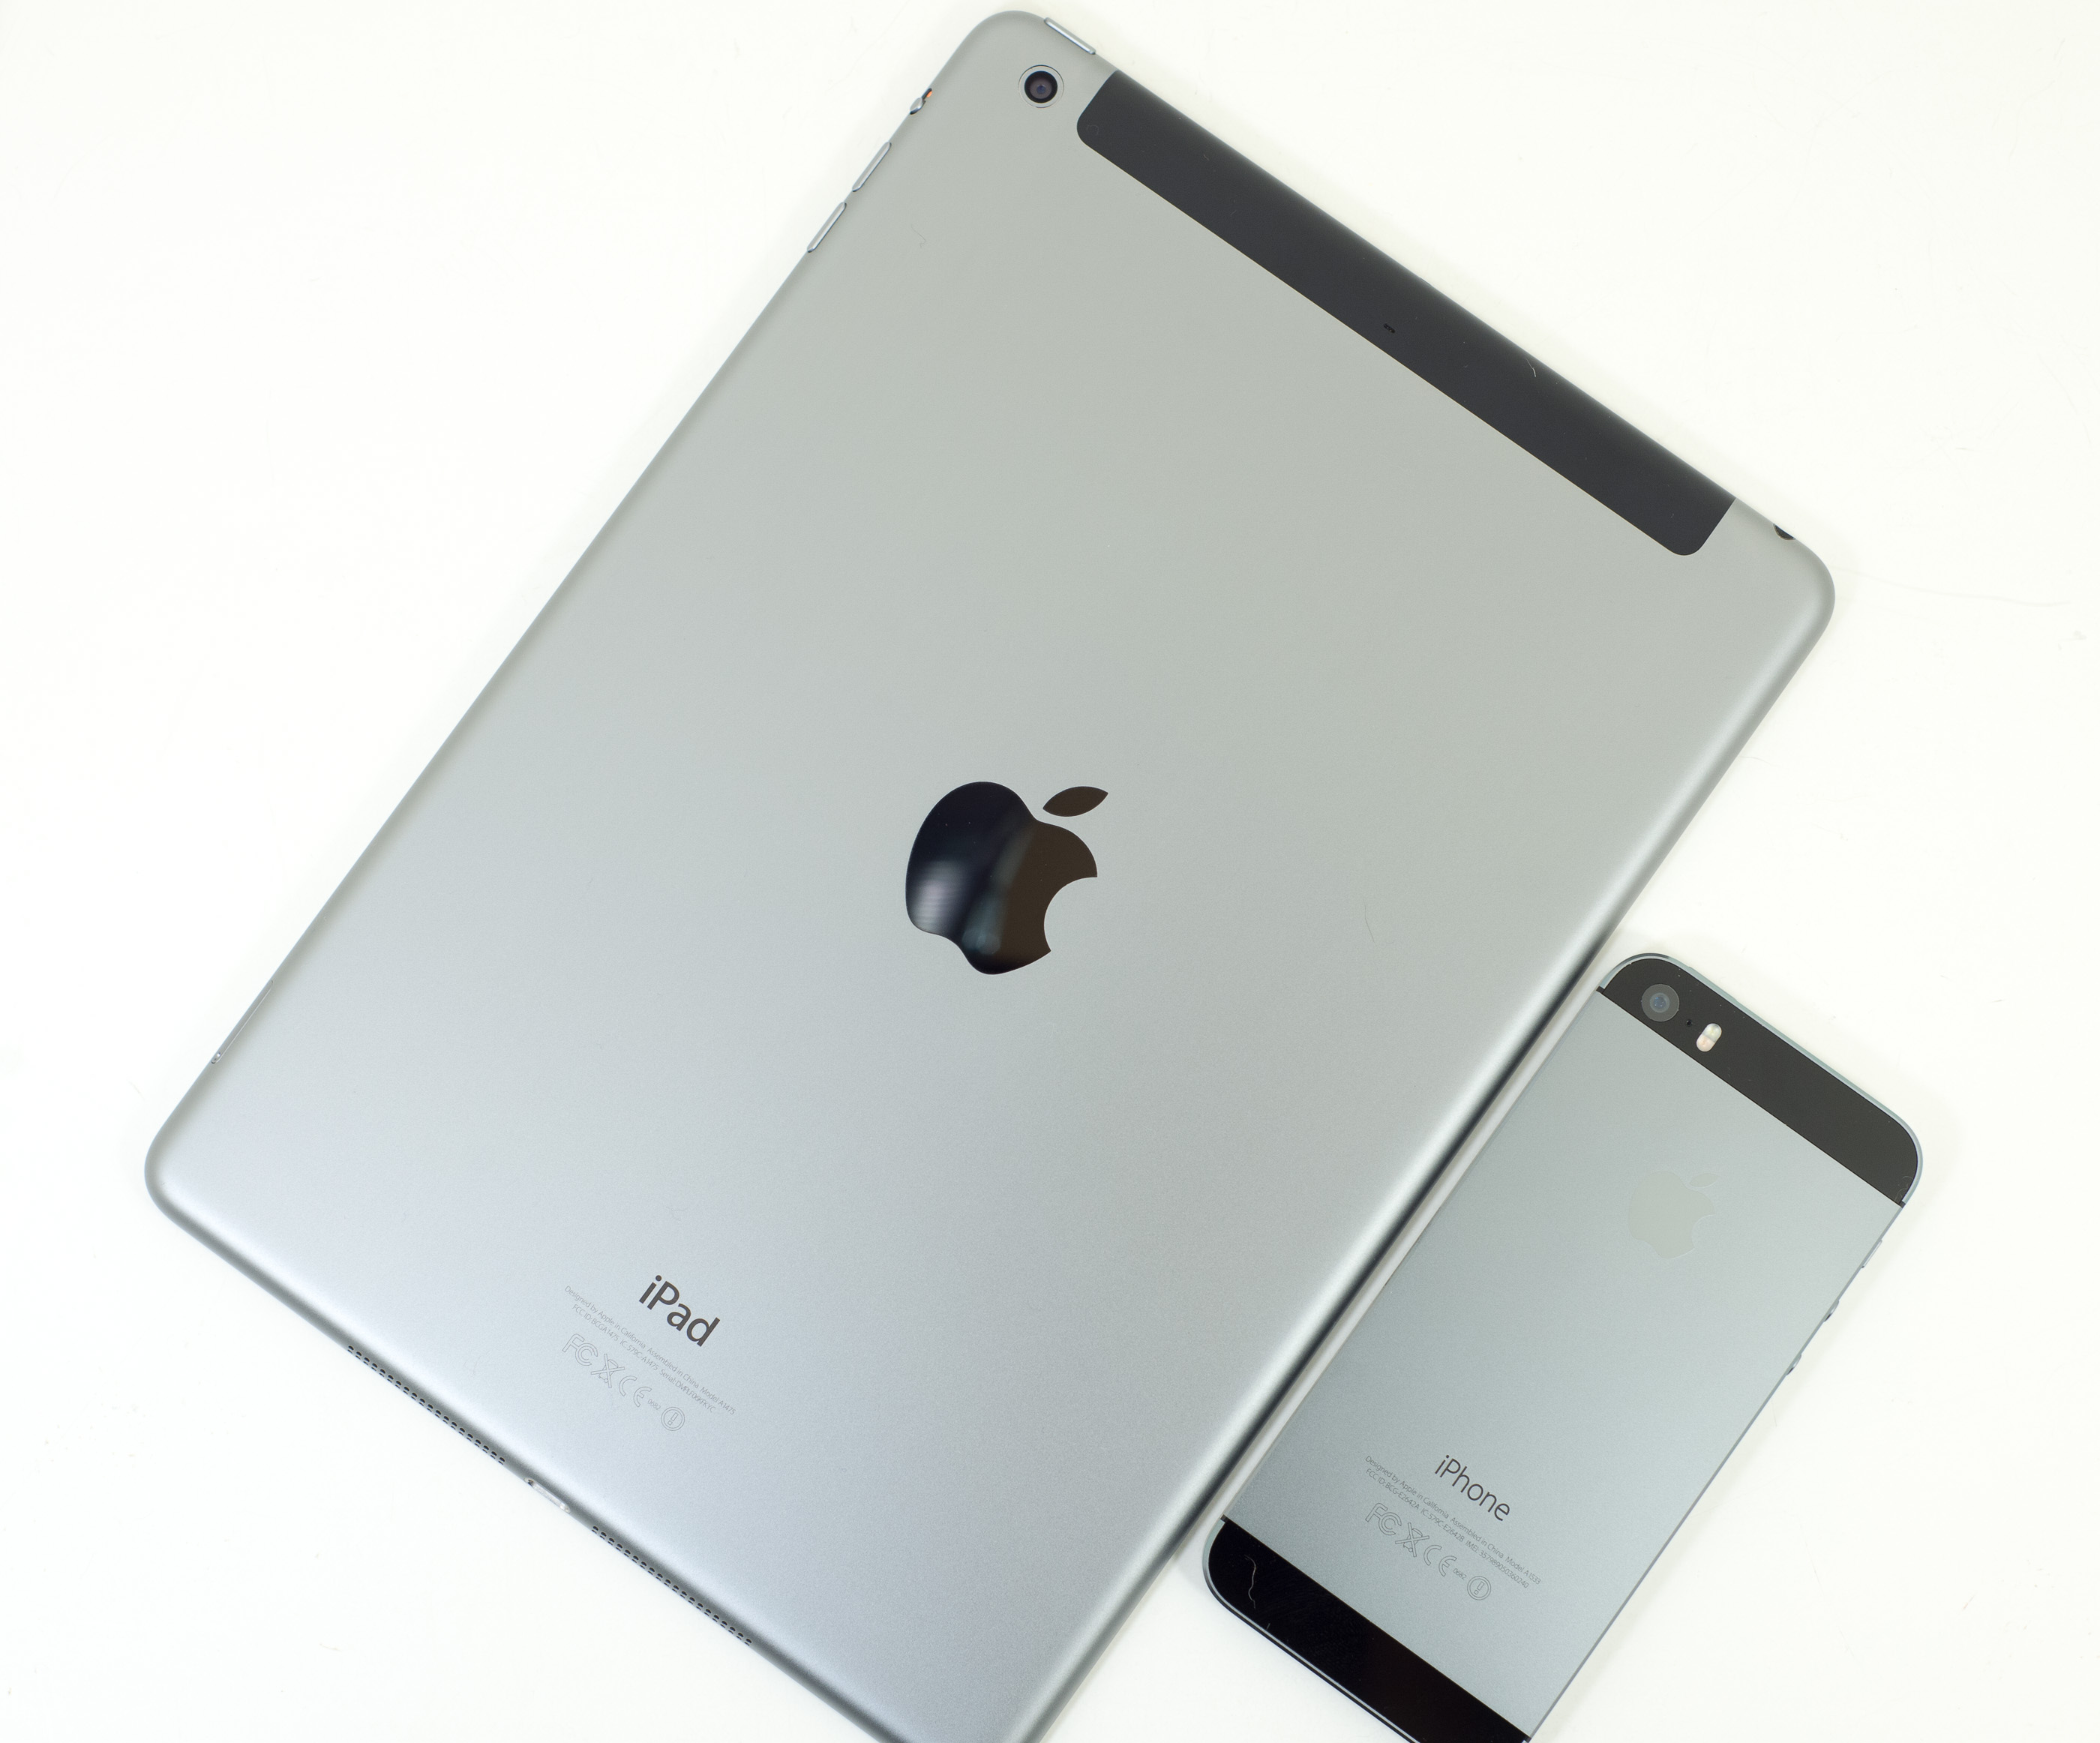 iPad Air iPhone 5 (AnandTech 001)